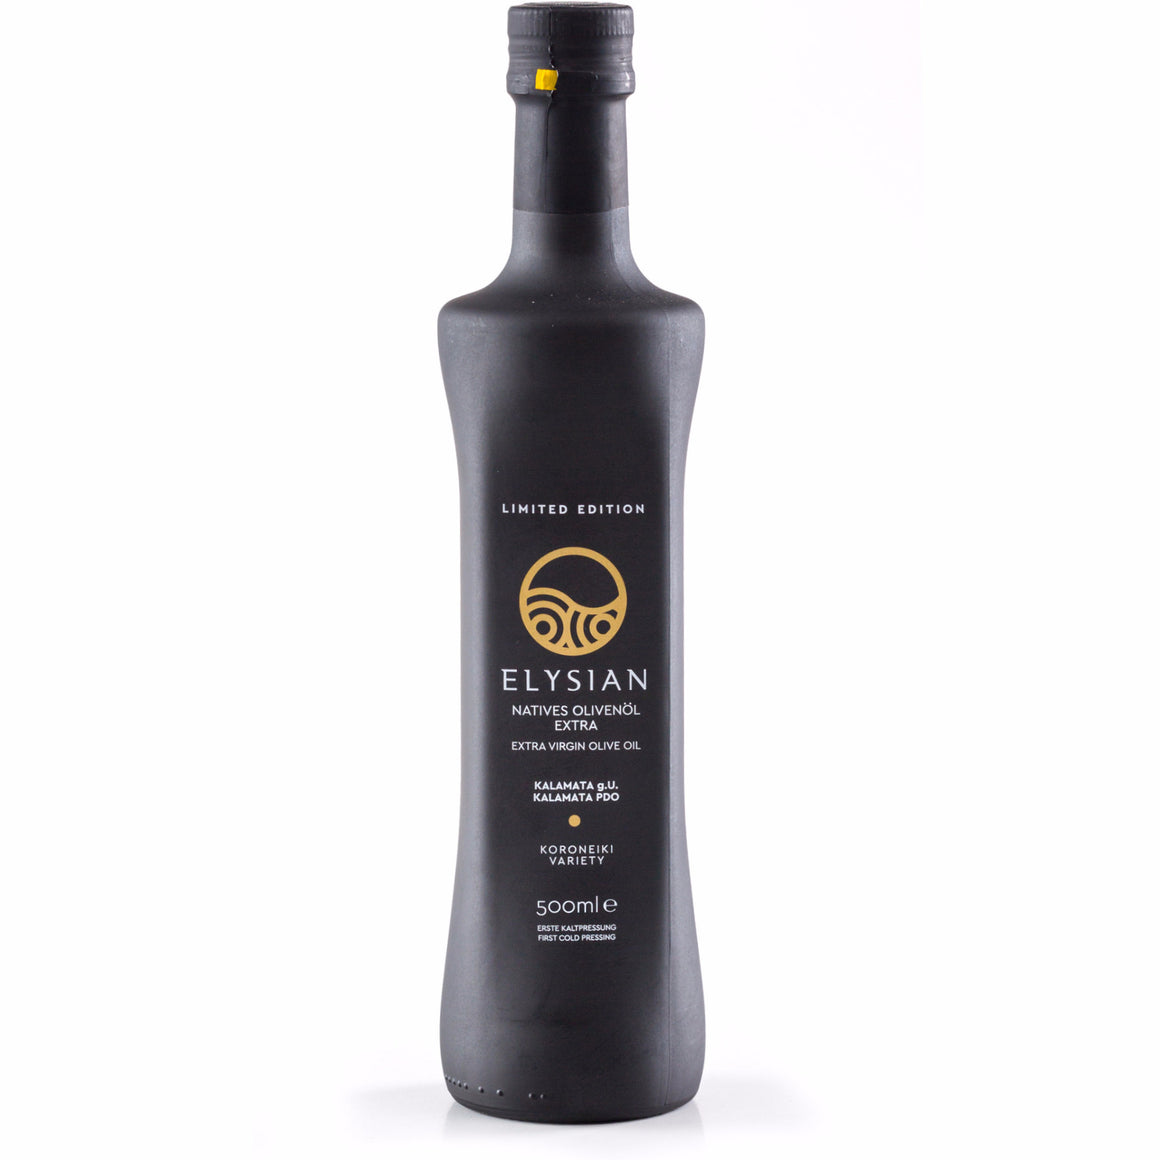 'Elysian' Extra Virgin Olive Oil - Limited Edition -500ml